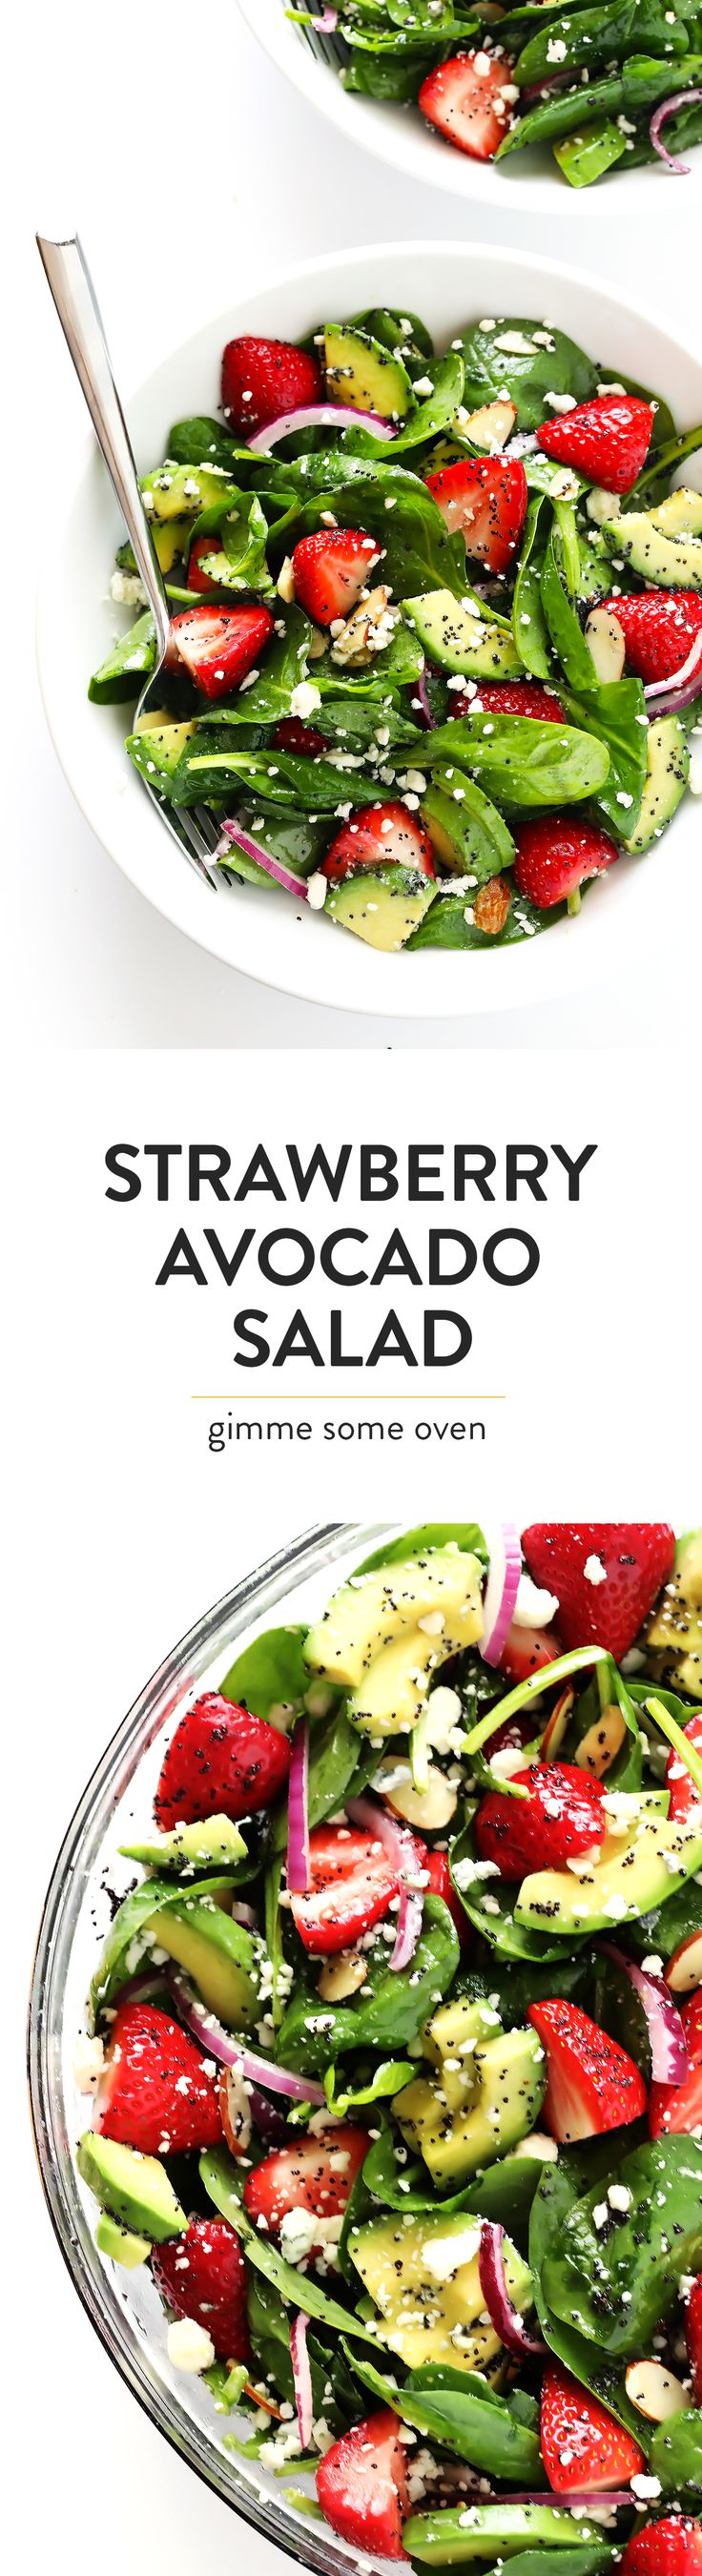 One of my favorite salad recipes!!  It's full of strawberries, avocado, red onion, goat (or blue) cheese, and tossed with an easy poppyseed dressing.  So fresh and delicious! | gimmesomeoven.com